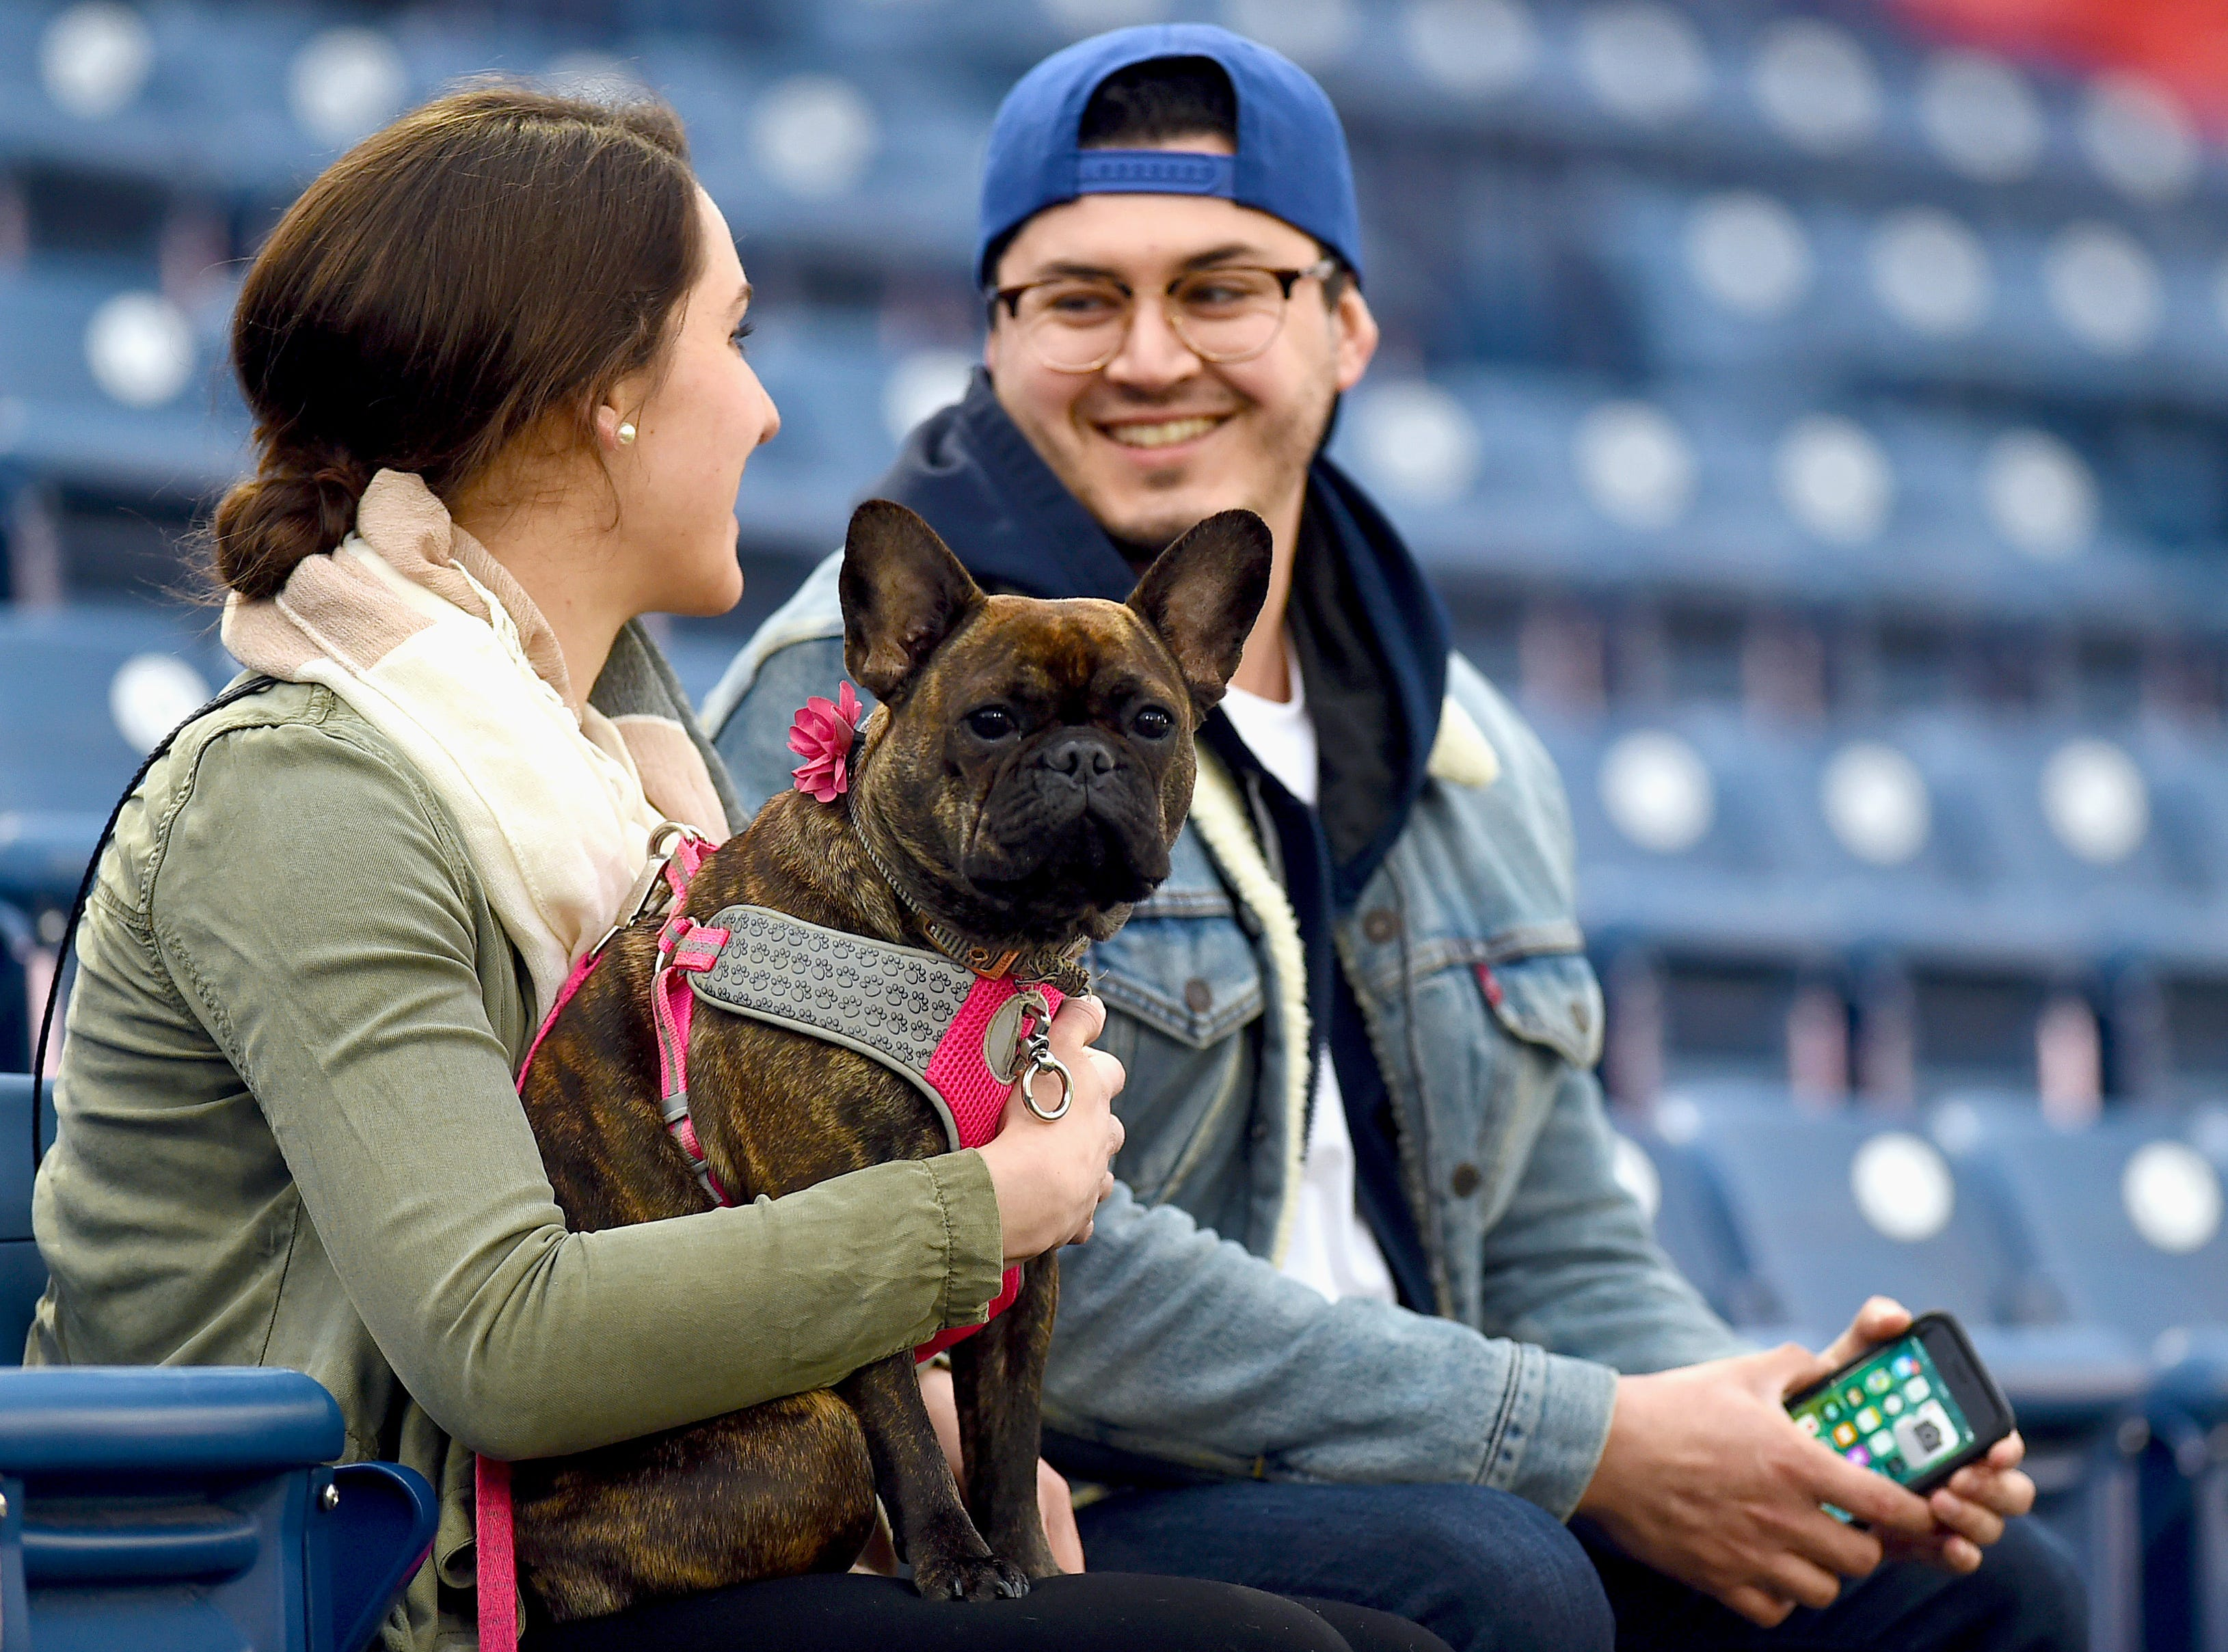 Penny and her owners Maura Reilly and Joe Curcuru of Binghamton during Mutt Monday as the Binghamton Rumble Ponies take on the Akron RubberDucks at NYSEG Stadium, April 29, 2019.